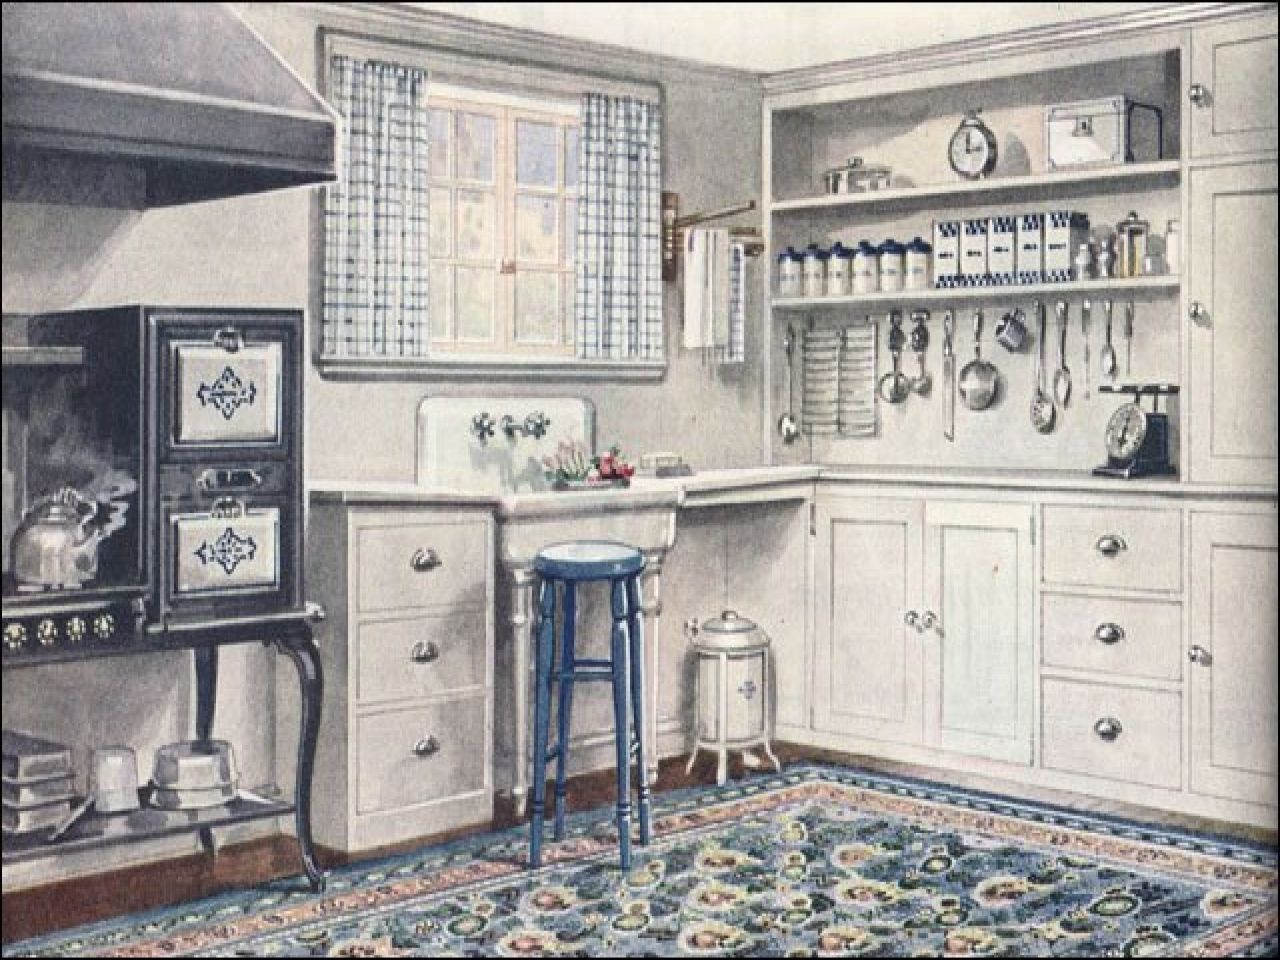 Craftsman Mission Style Kitchen Cabinets 1920 S Style Kitchen Cabinets 1920s Home Mission Style Kitchen Cabinets Kitchen Cabinet Styles Mission Style Kitchens